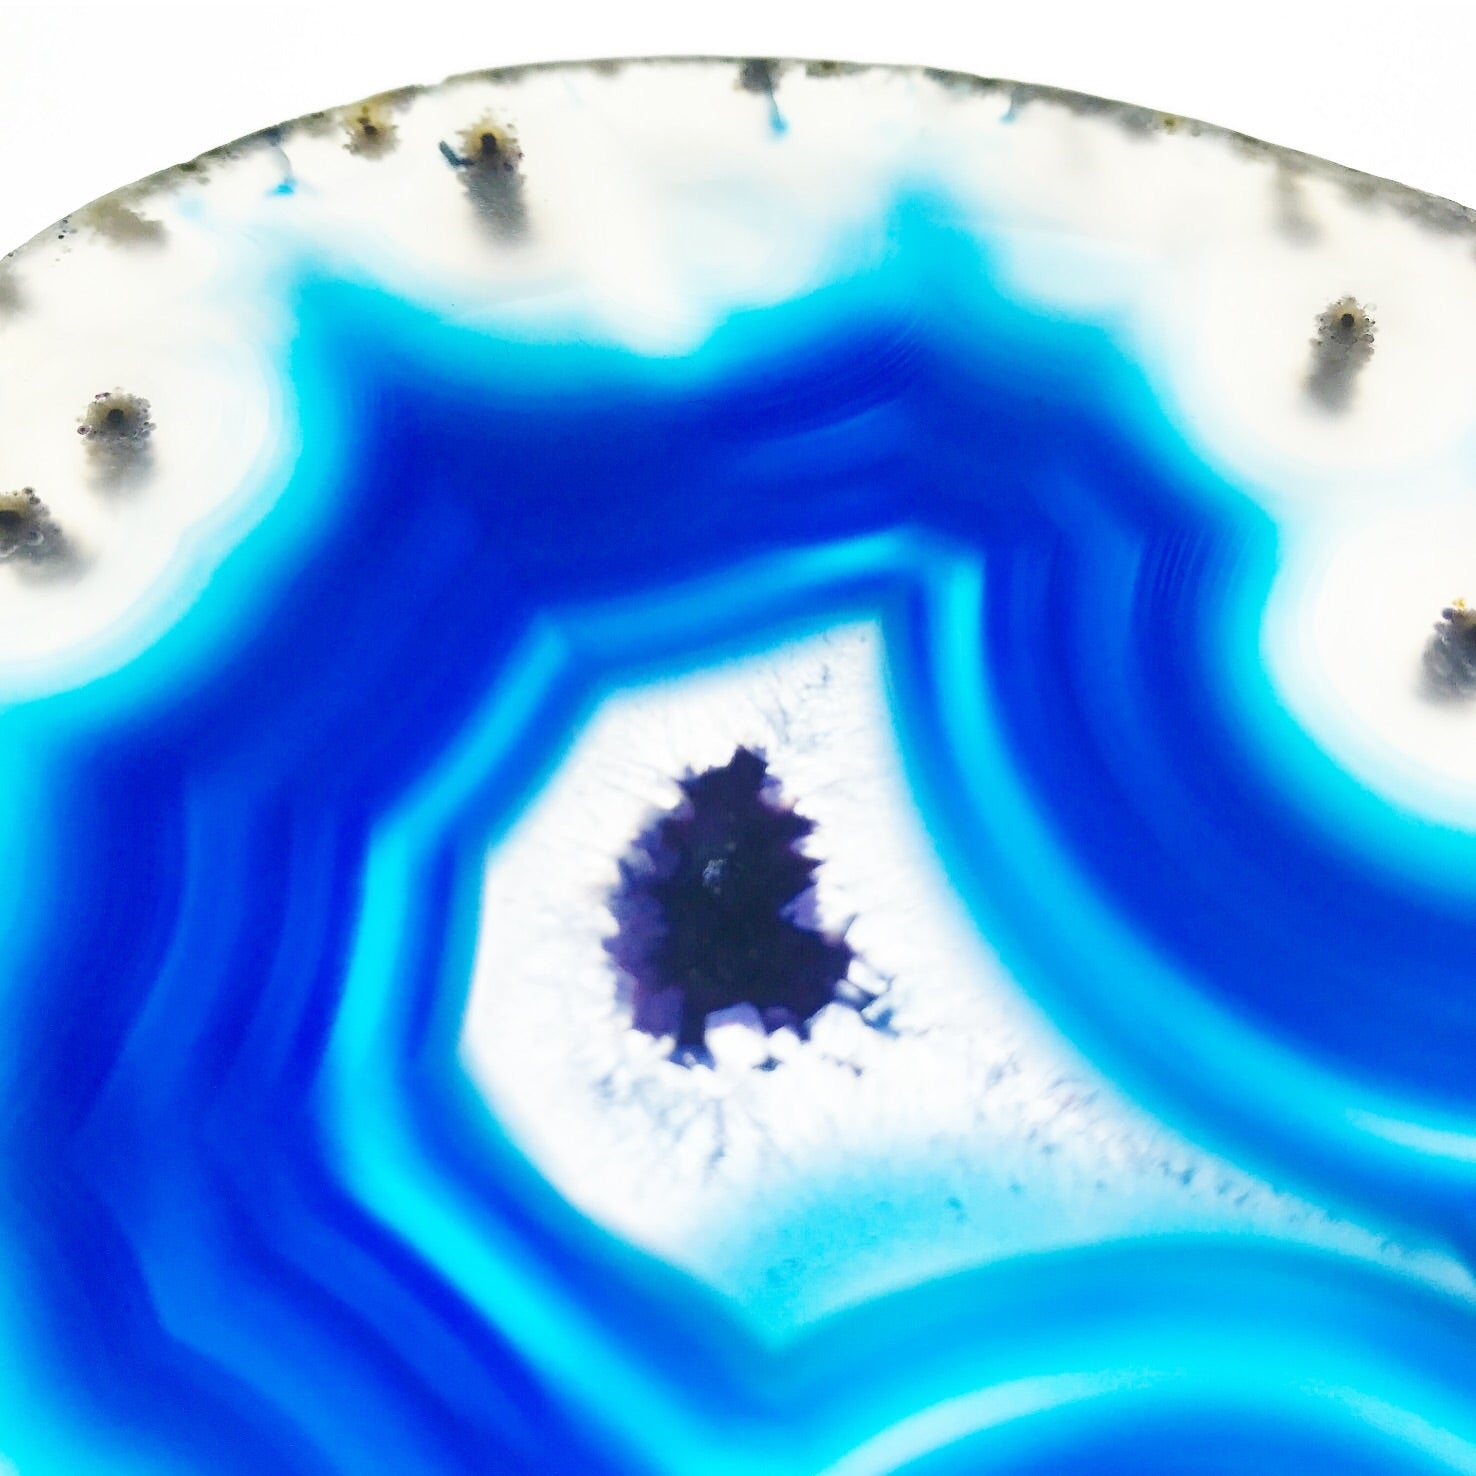 The Spoken Aura & Natures Boundary, 2018